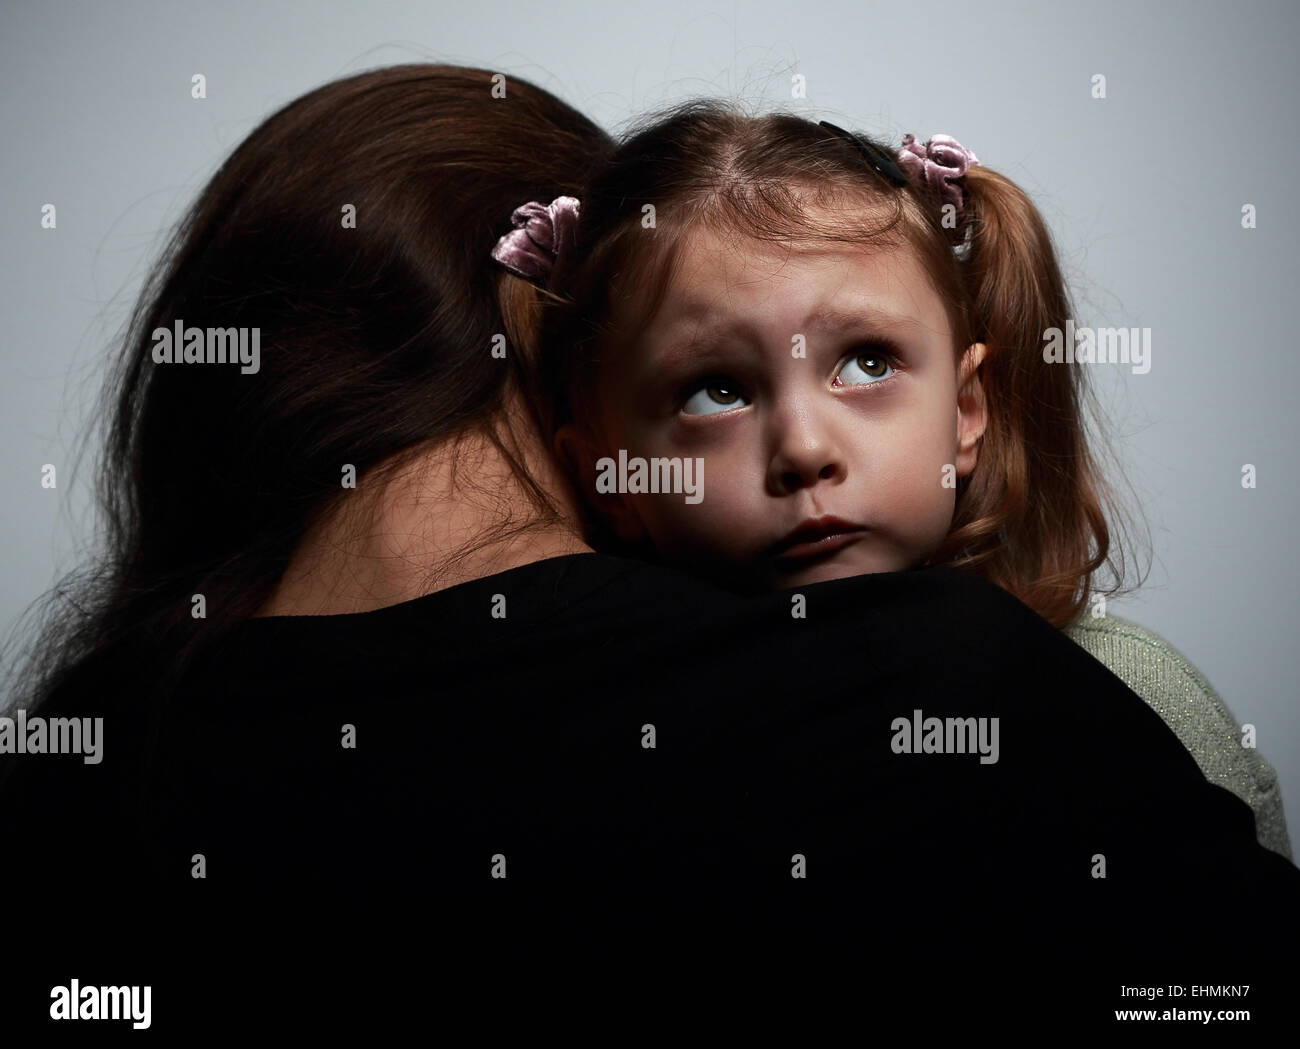 Thinking sad daughter embracing her mother and looking up on dark background - Stock Image